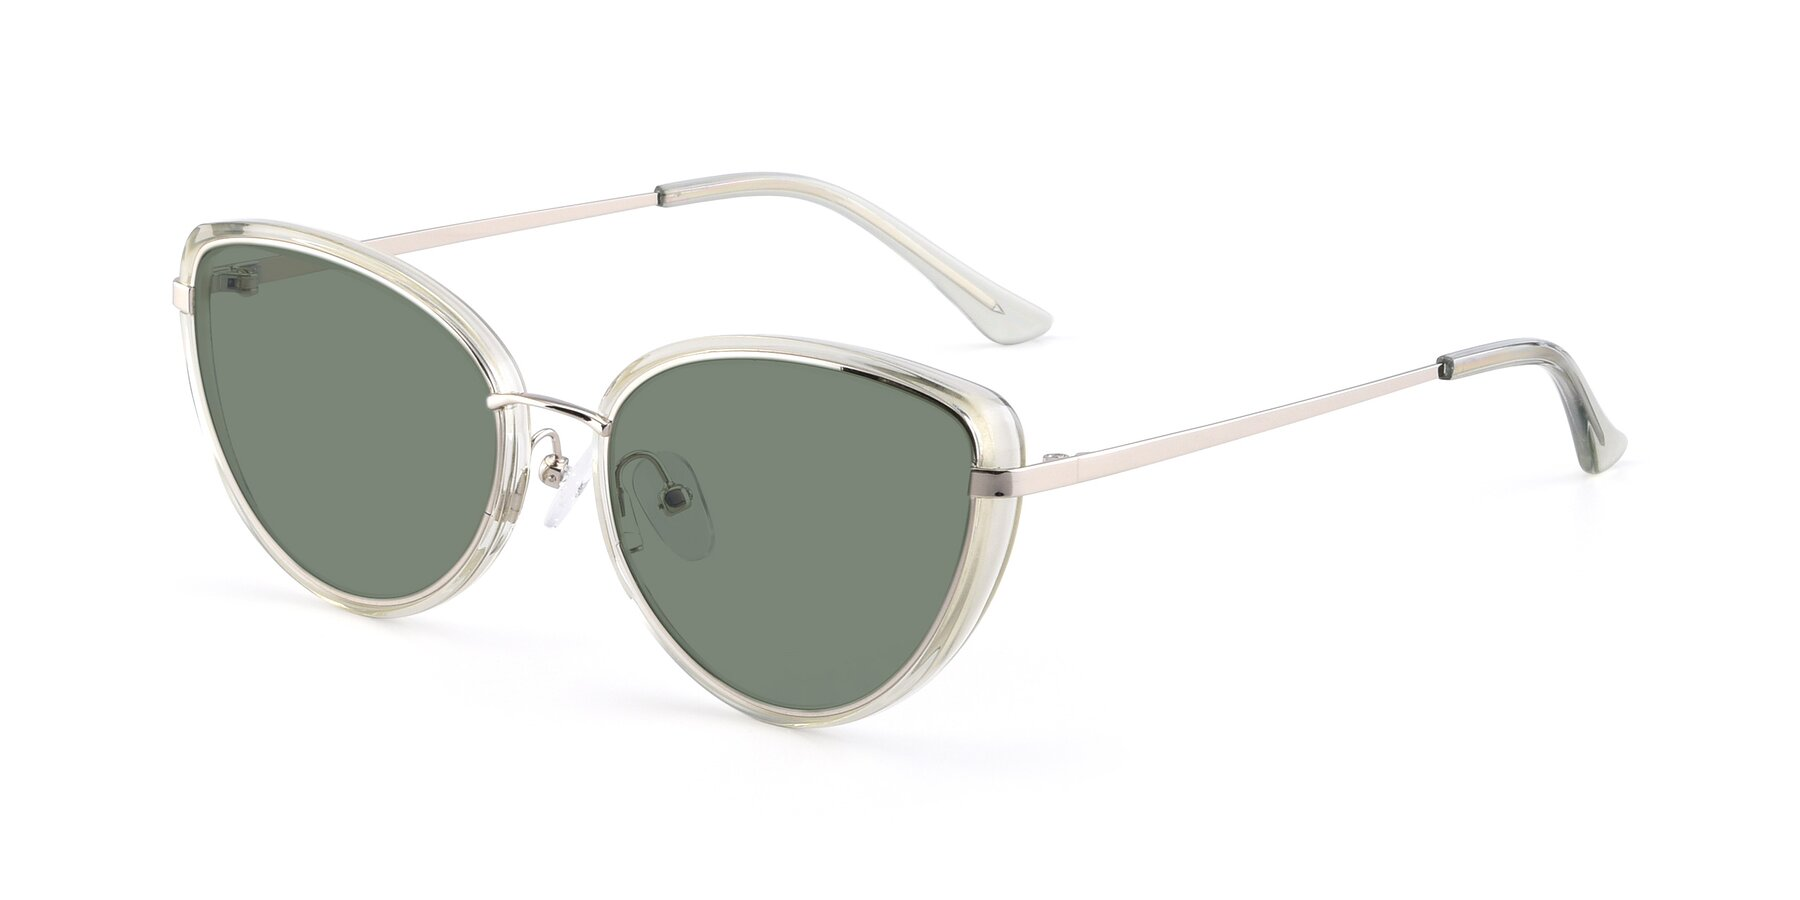 Angle of 17706 in Transparent Green-Silver with Medium Green Tinted Lenses